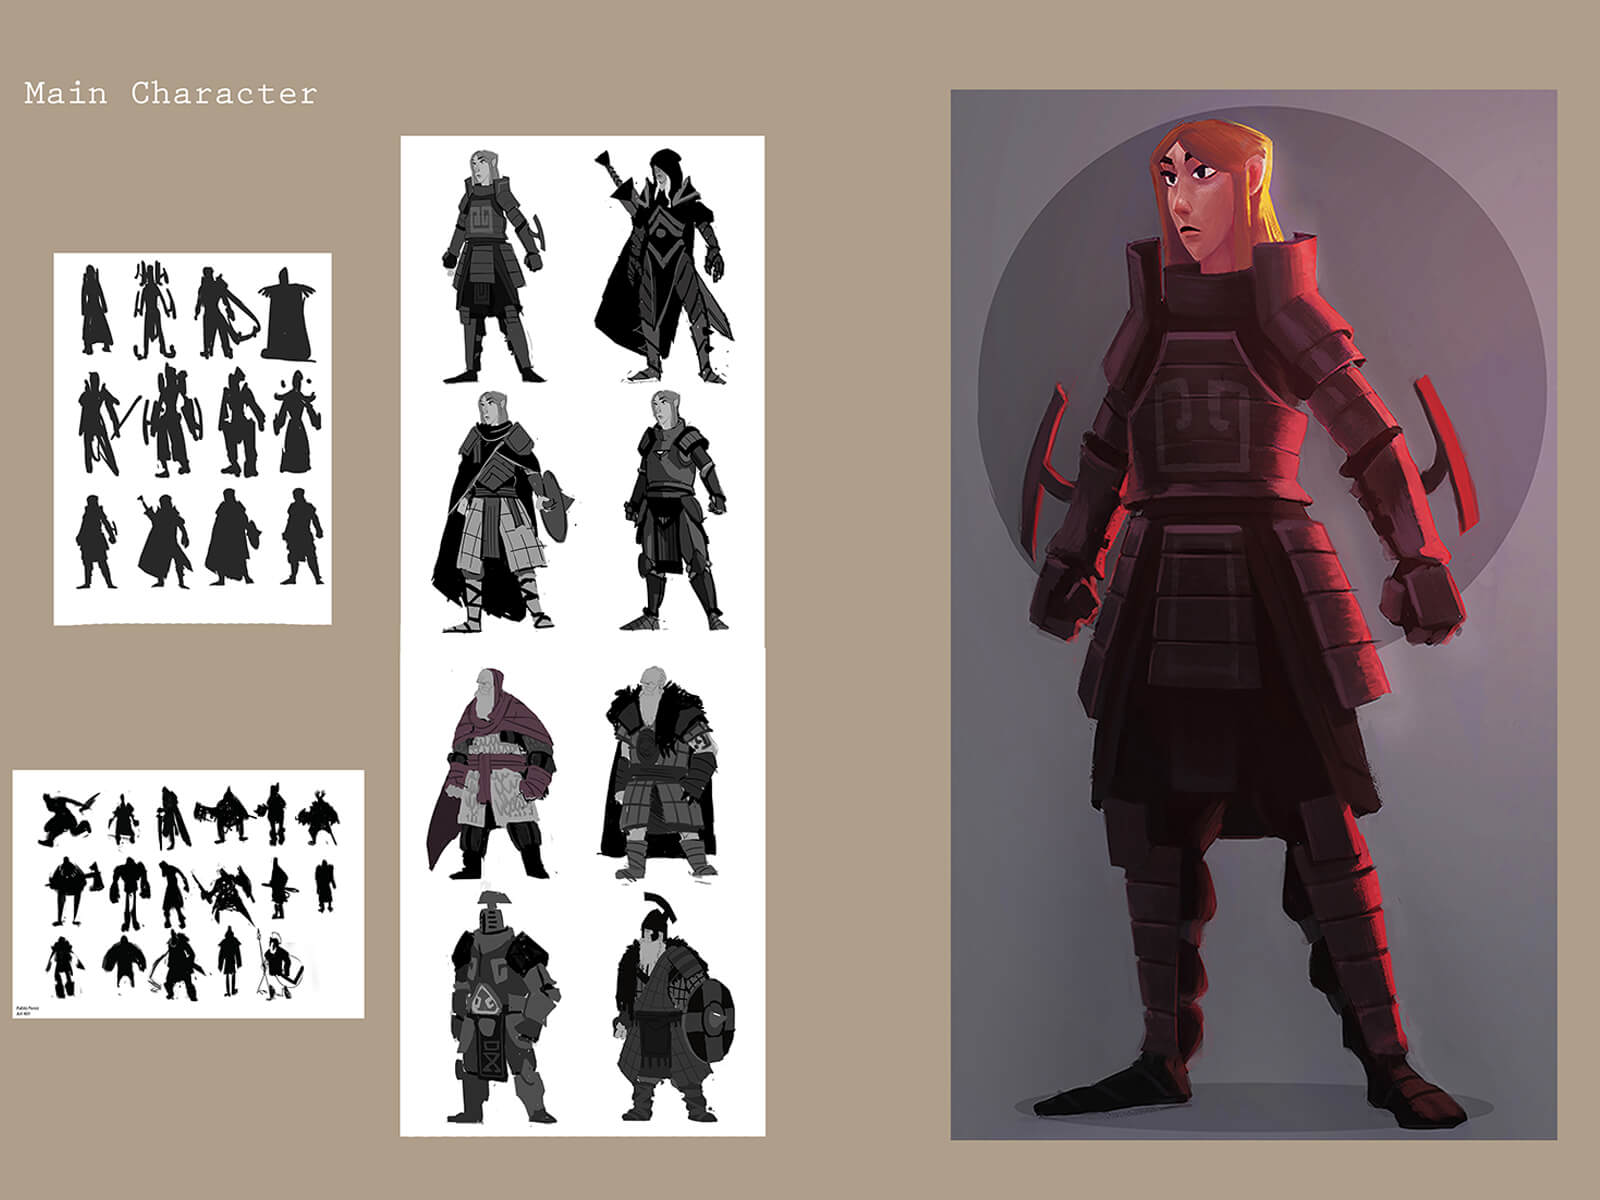 Black-and-white, color, and silhouette drawings of various warriors standing in different armor sets and styles.